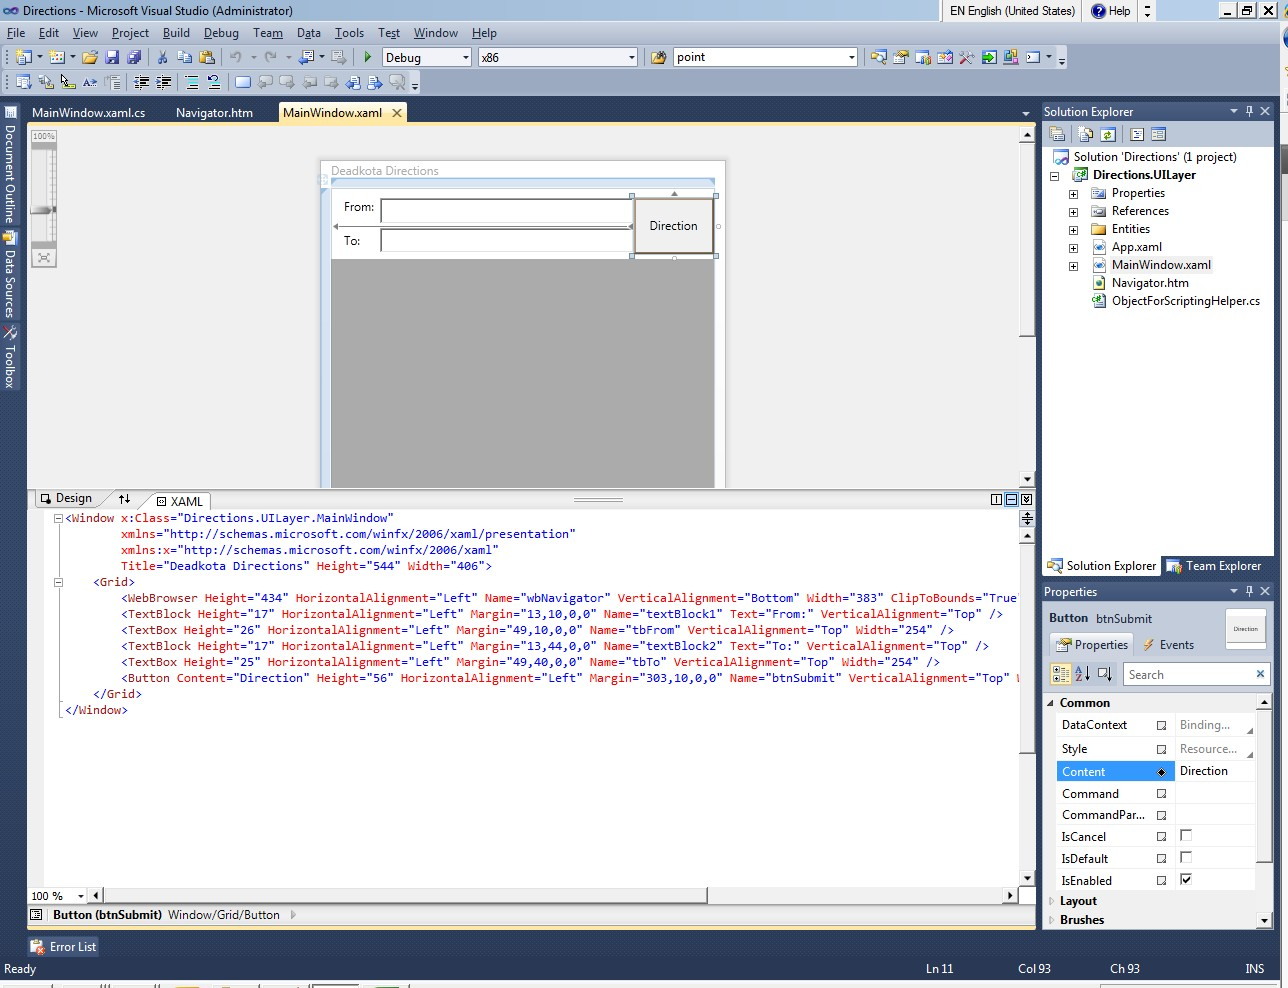 turn by turn directions application using WPF and c#